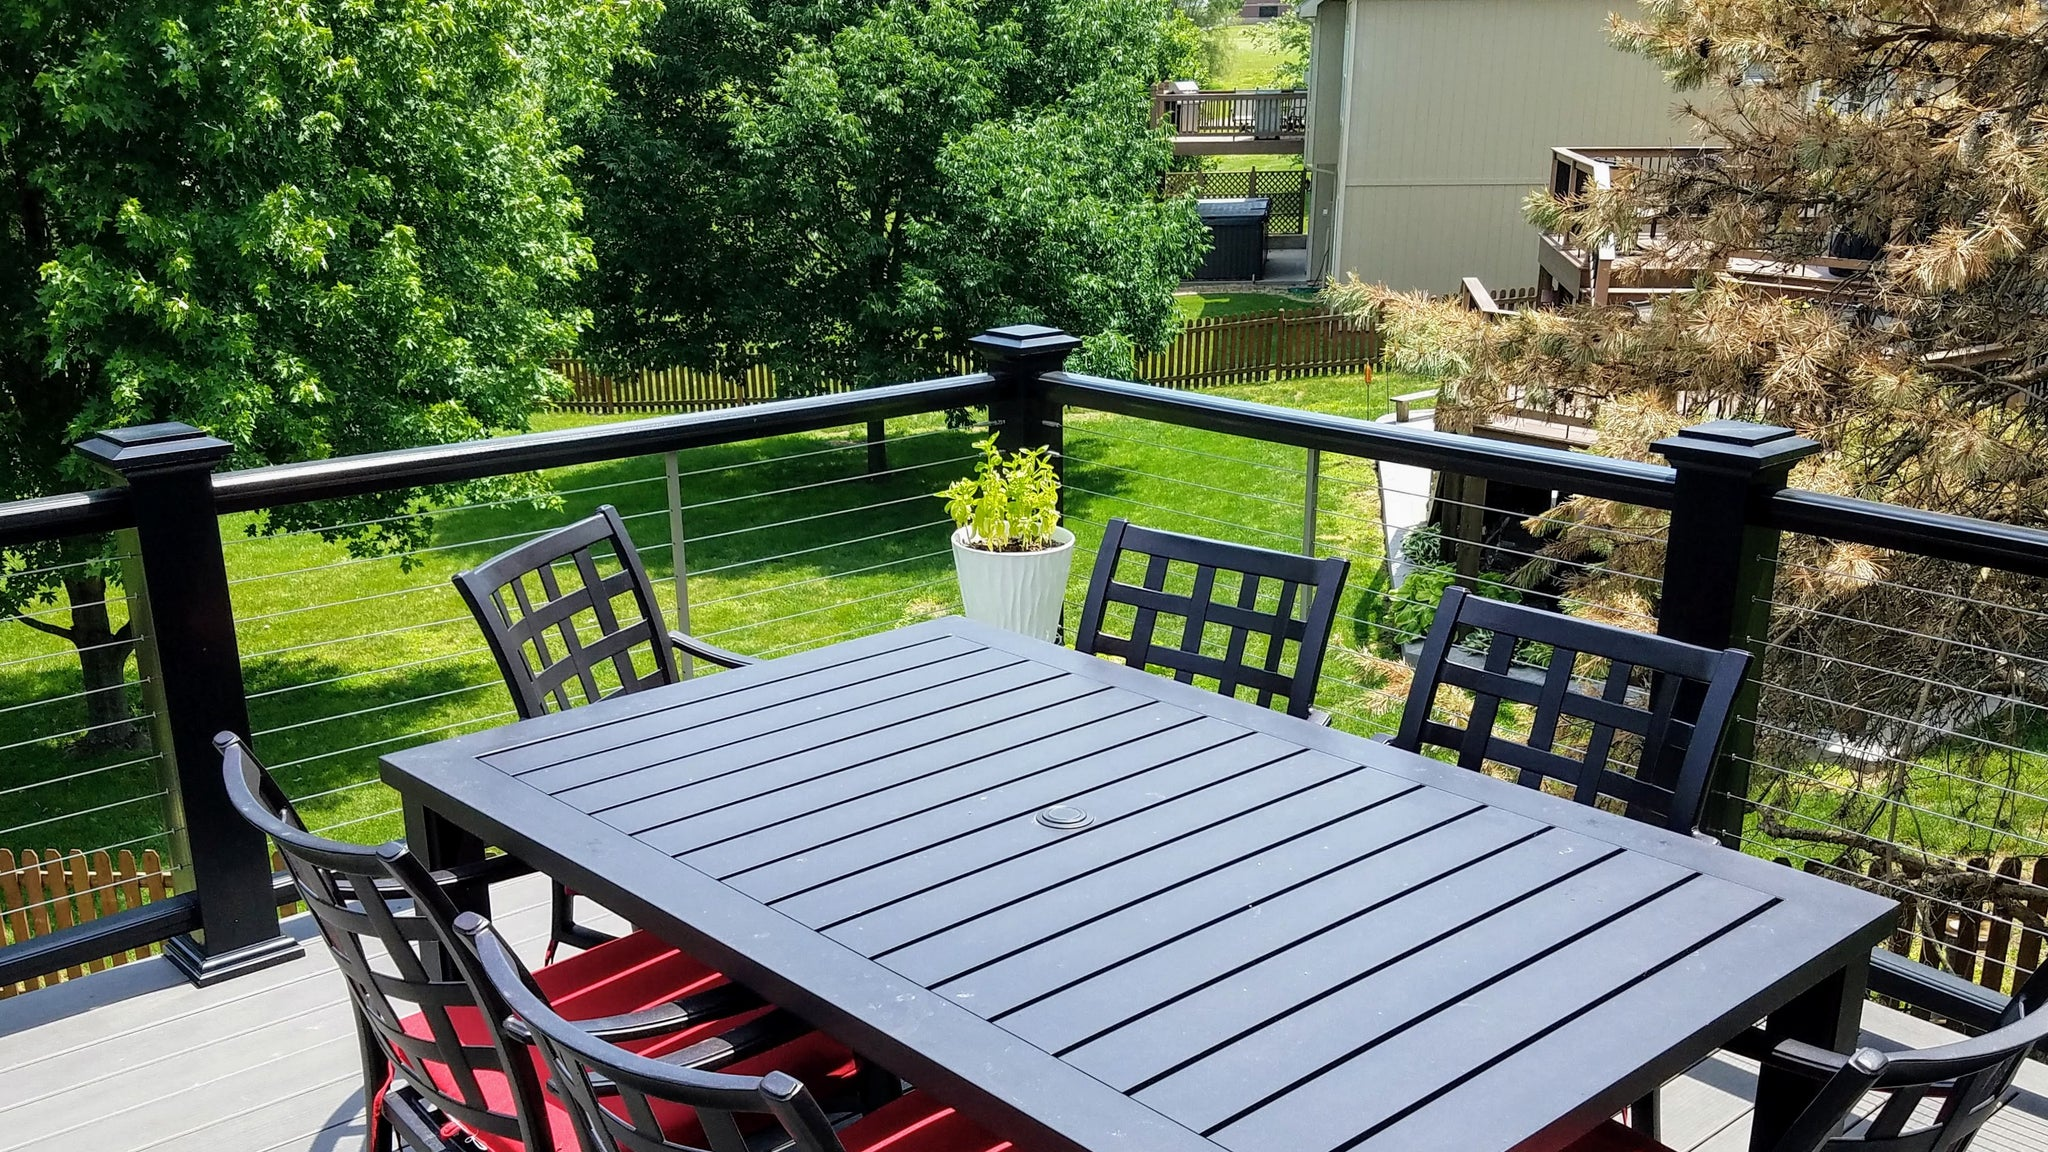 Back deck table with chairs and view of backyard though cable rail by feeney, rails by azek and decking by timbertech for a low-maintainance, easy-to-maintain wonderful space